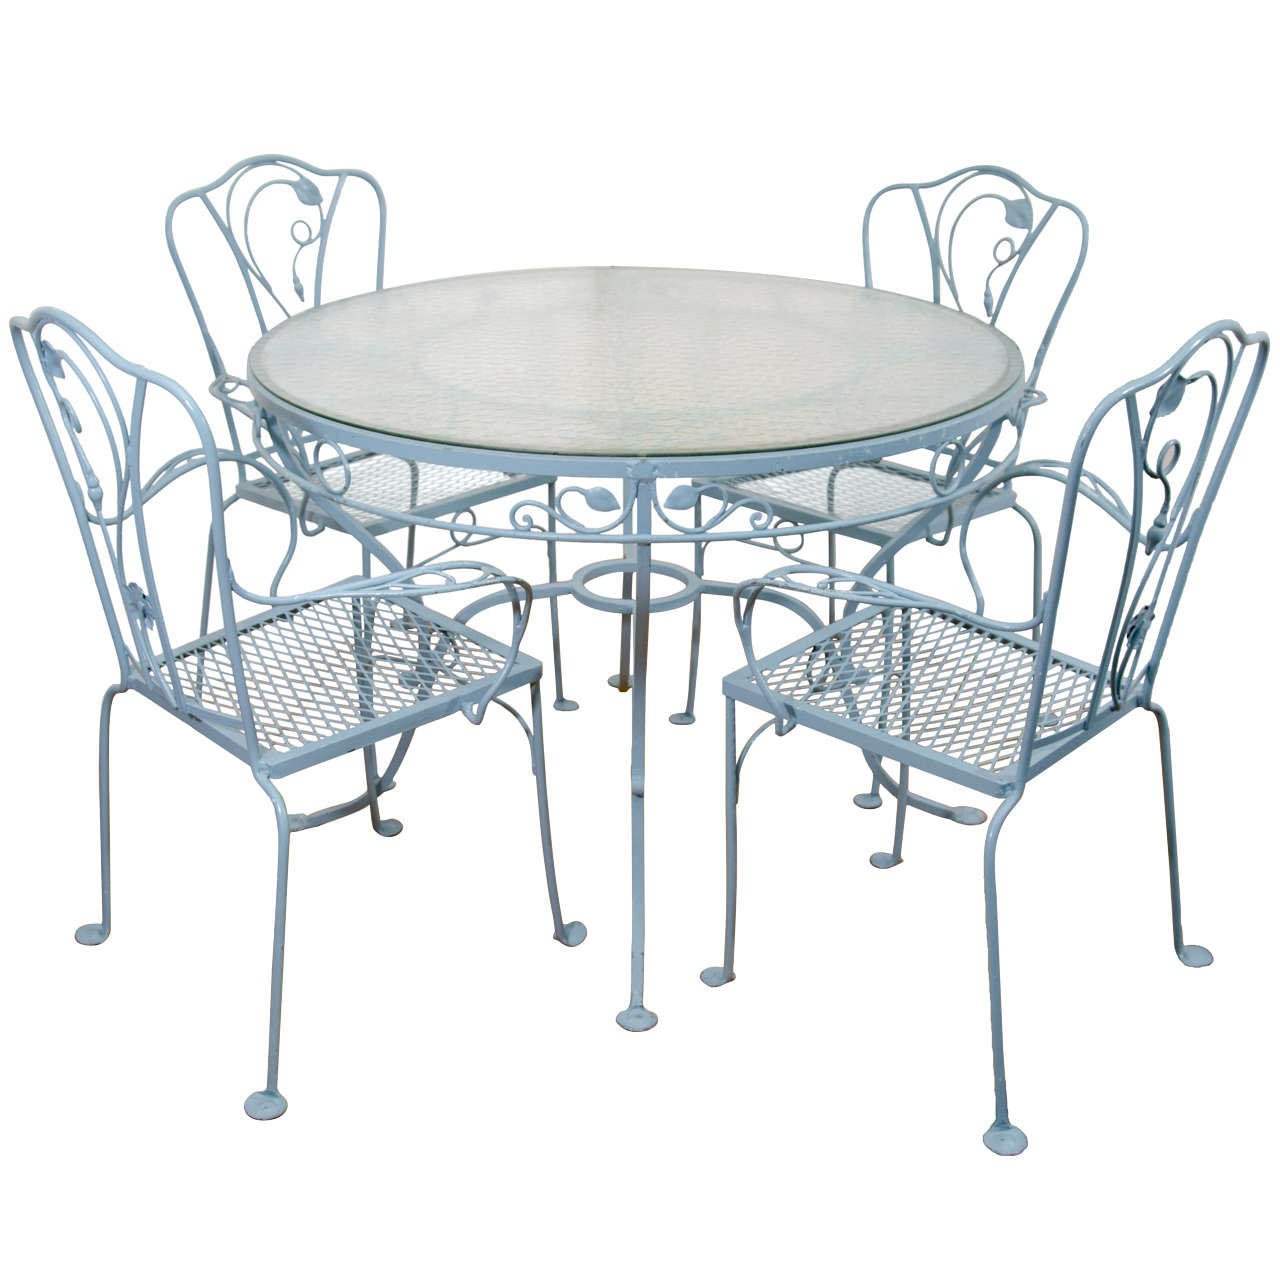 vintage salterini wrought iron table and chairs in powder blue